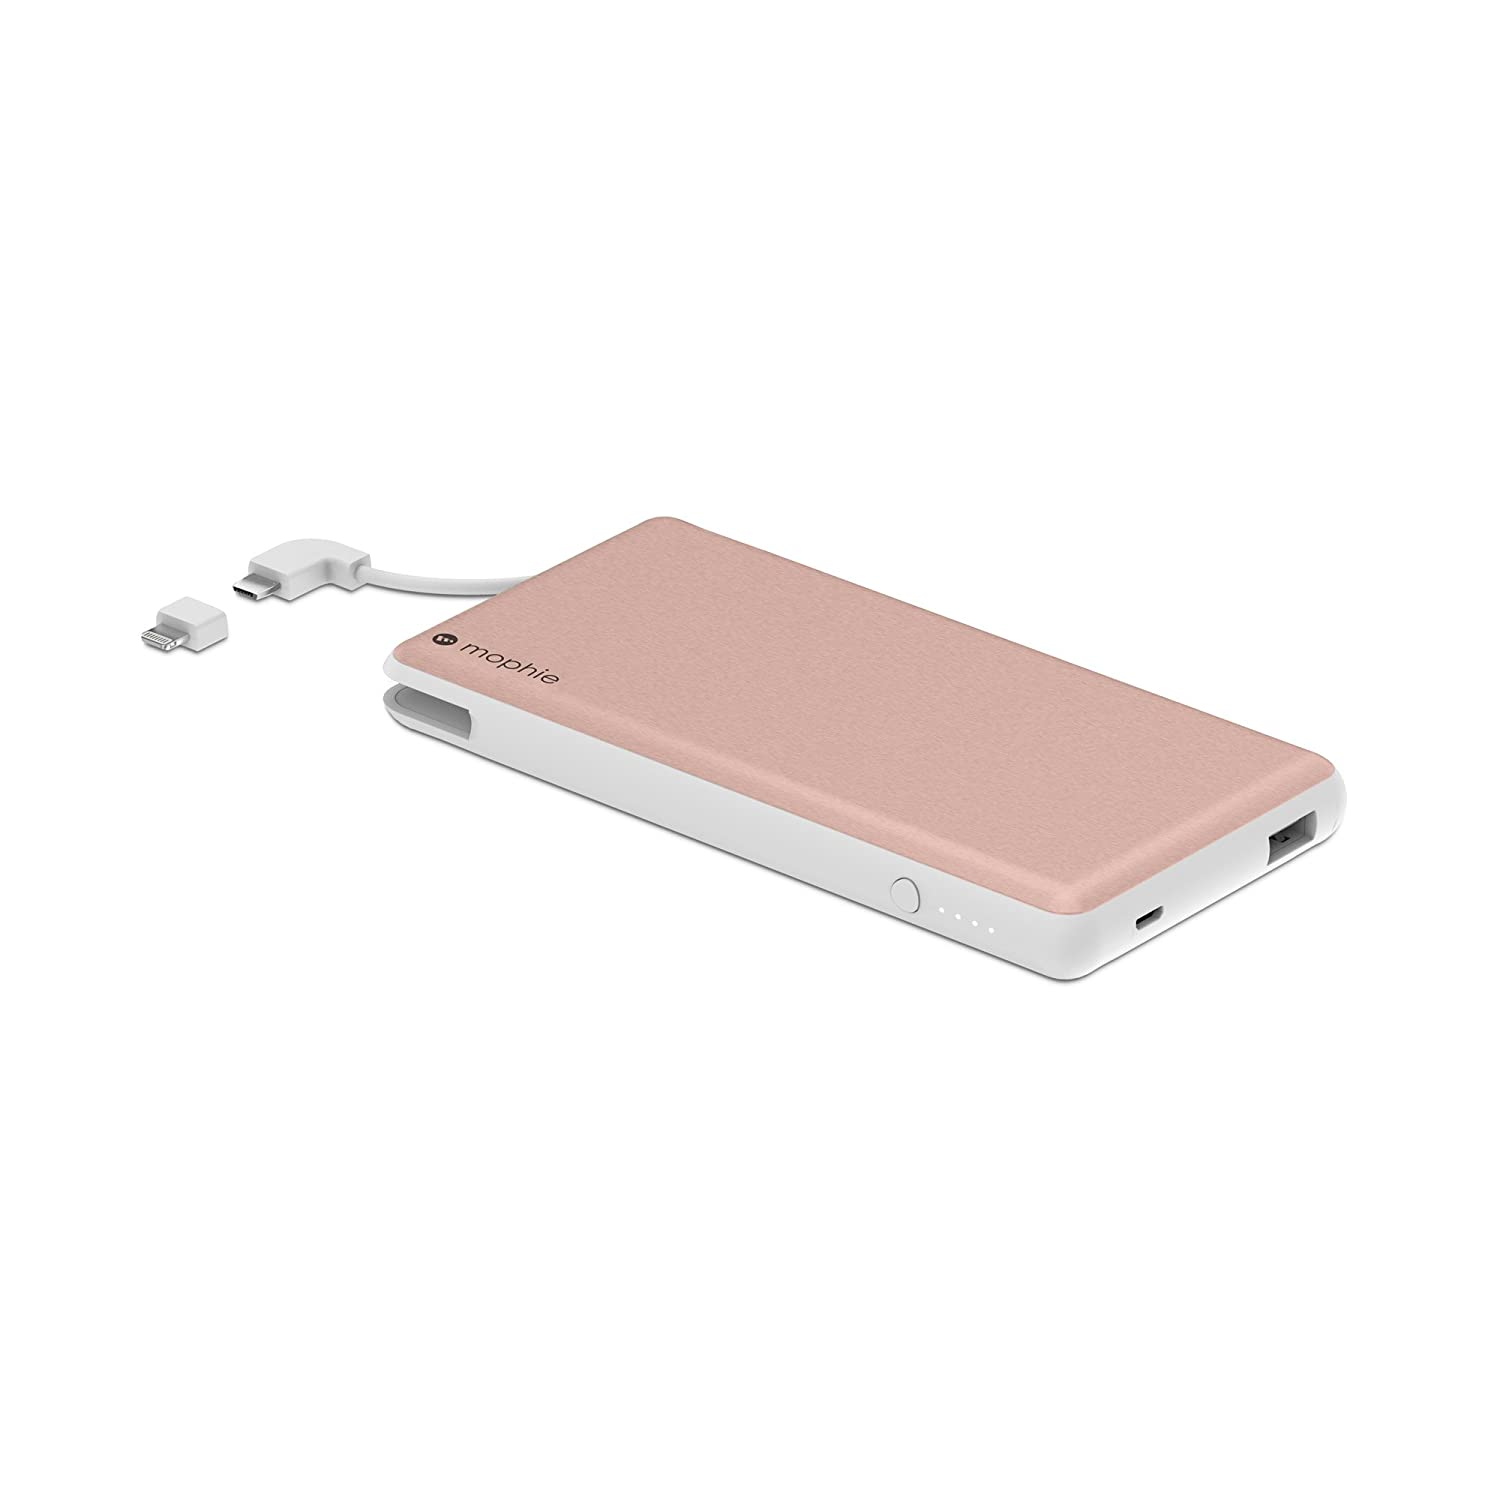 sneakers for cheap 00b63 e950d mophie powerstation Plus XL External Battery with Built in Cables for  Smartphones and Tablets (12,000mAh) - Rose Gold